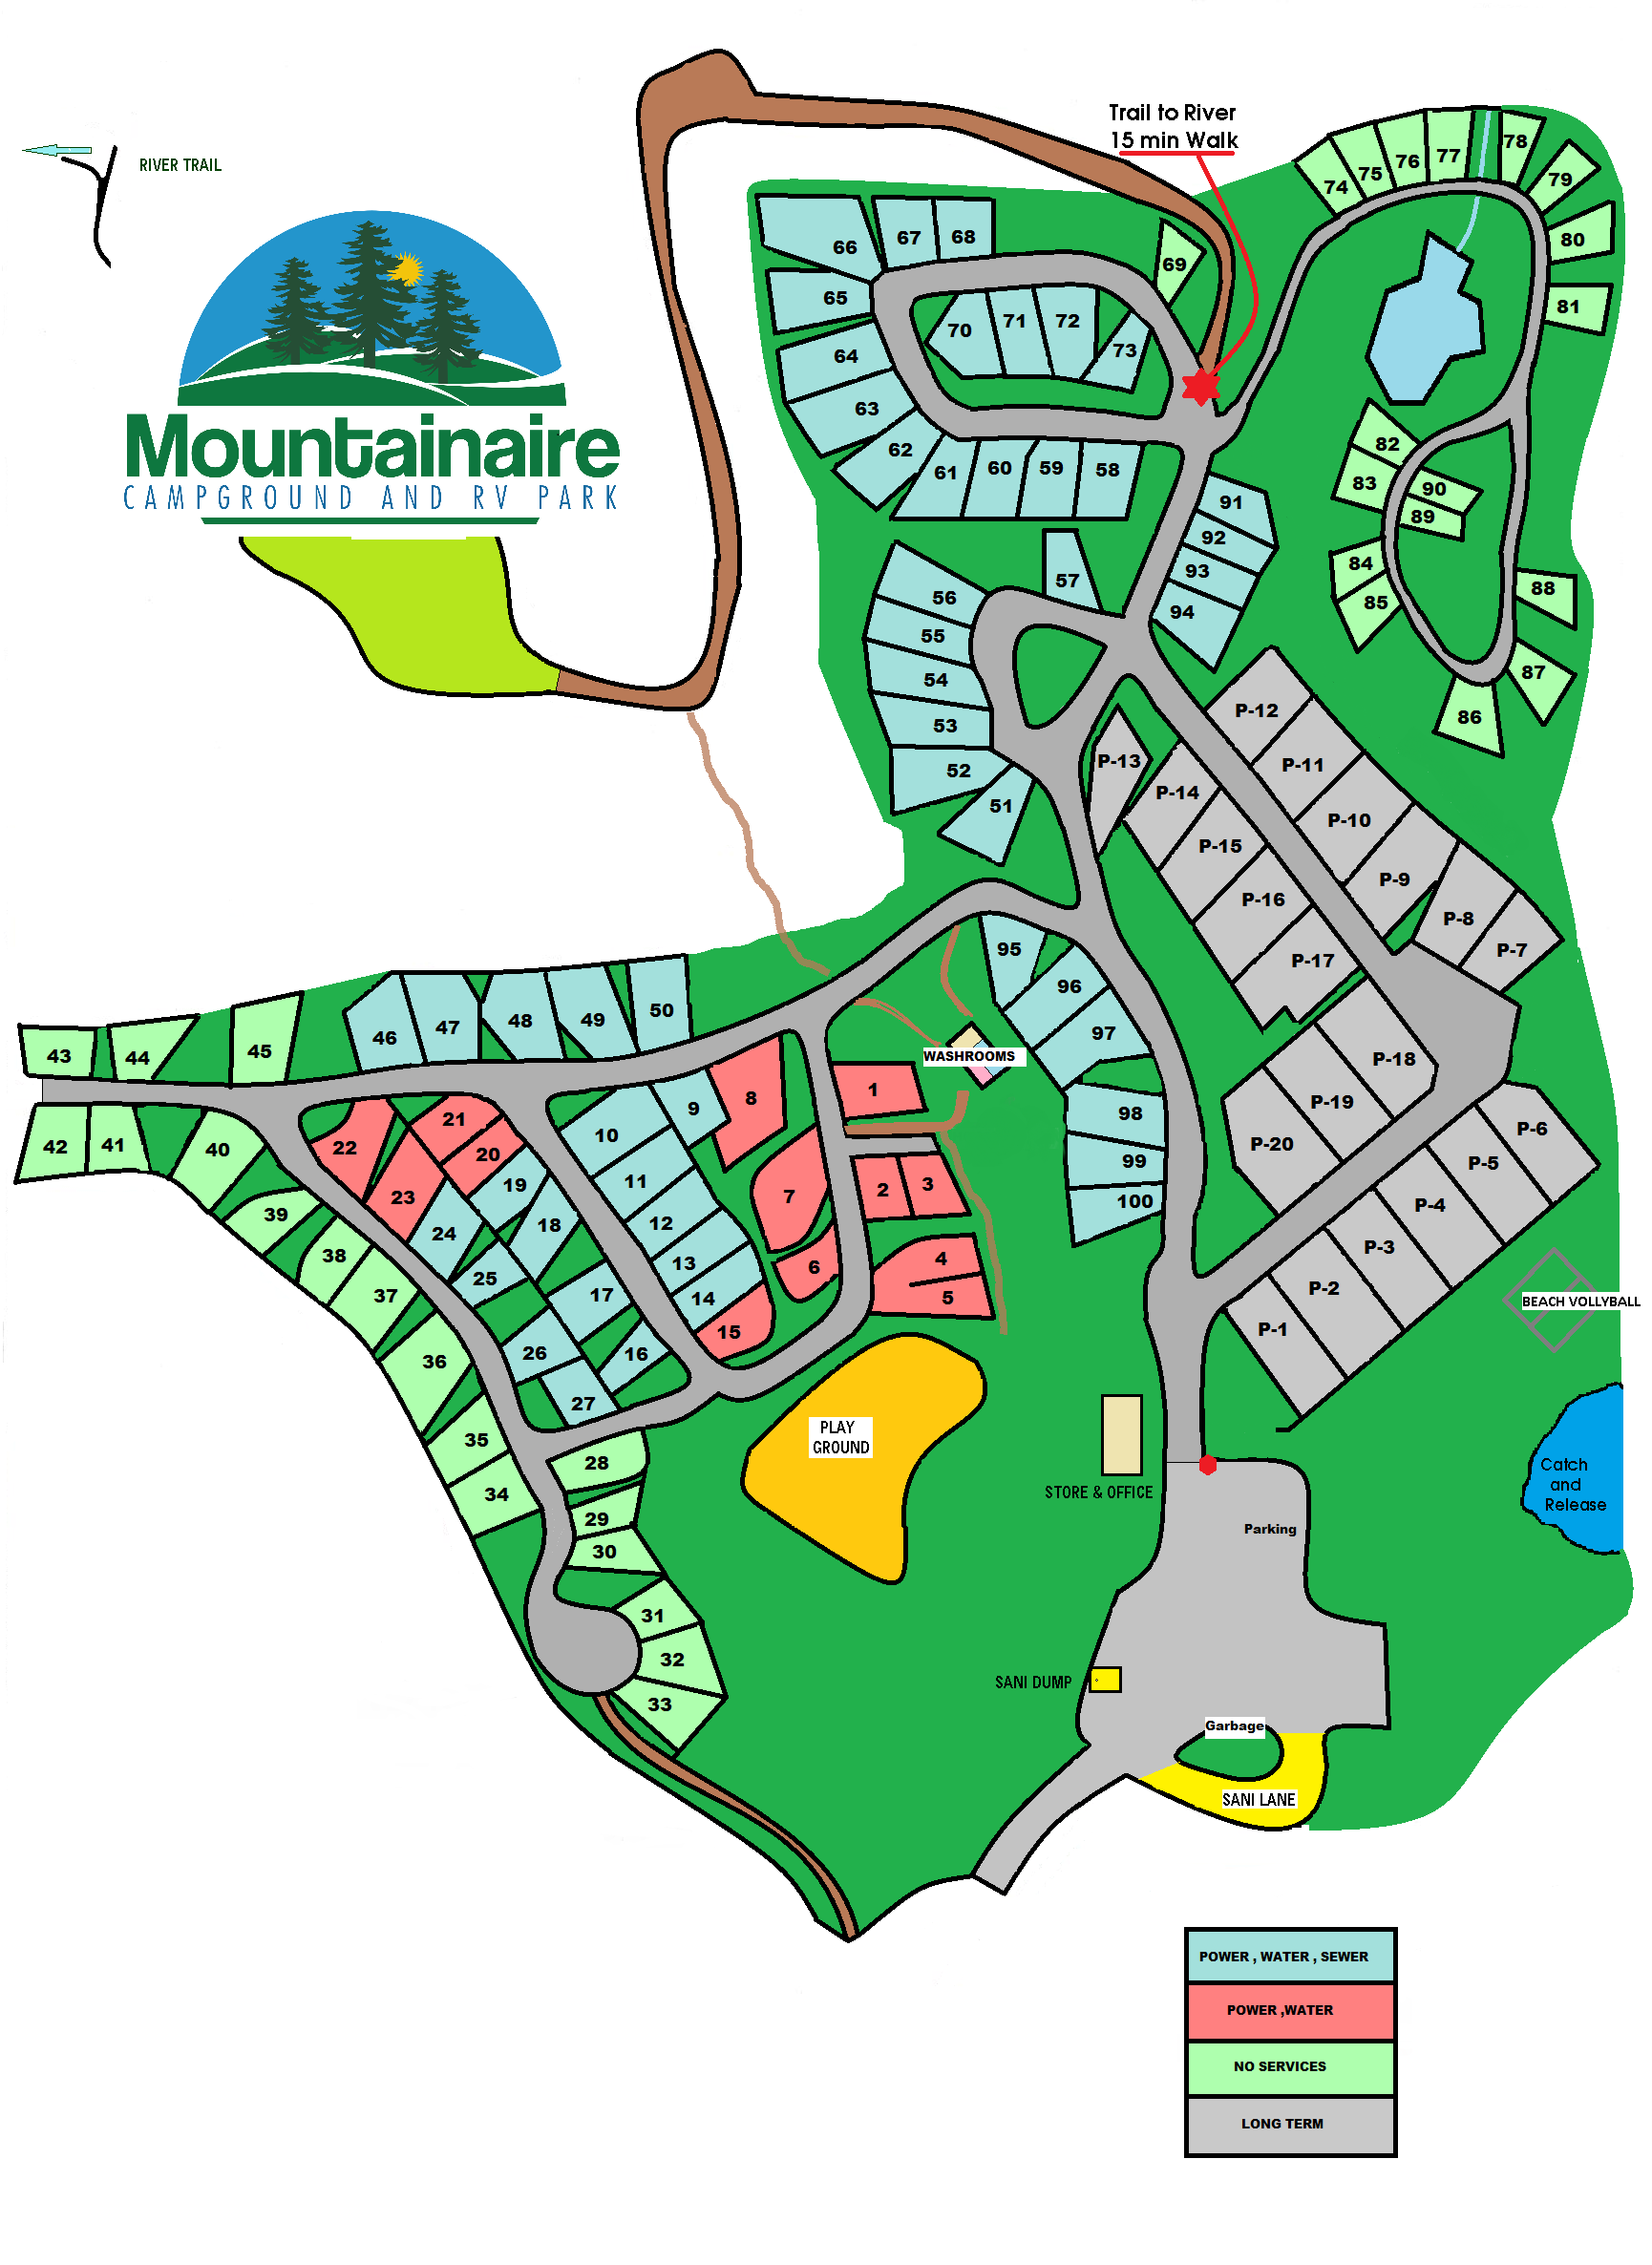 Mountainaire Campground & RV Park map